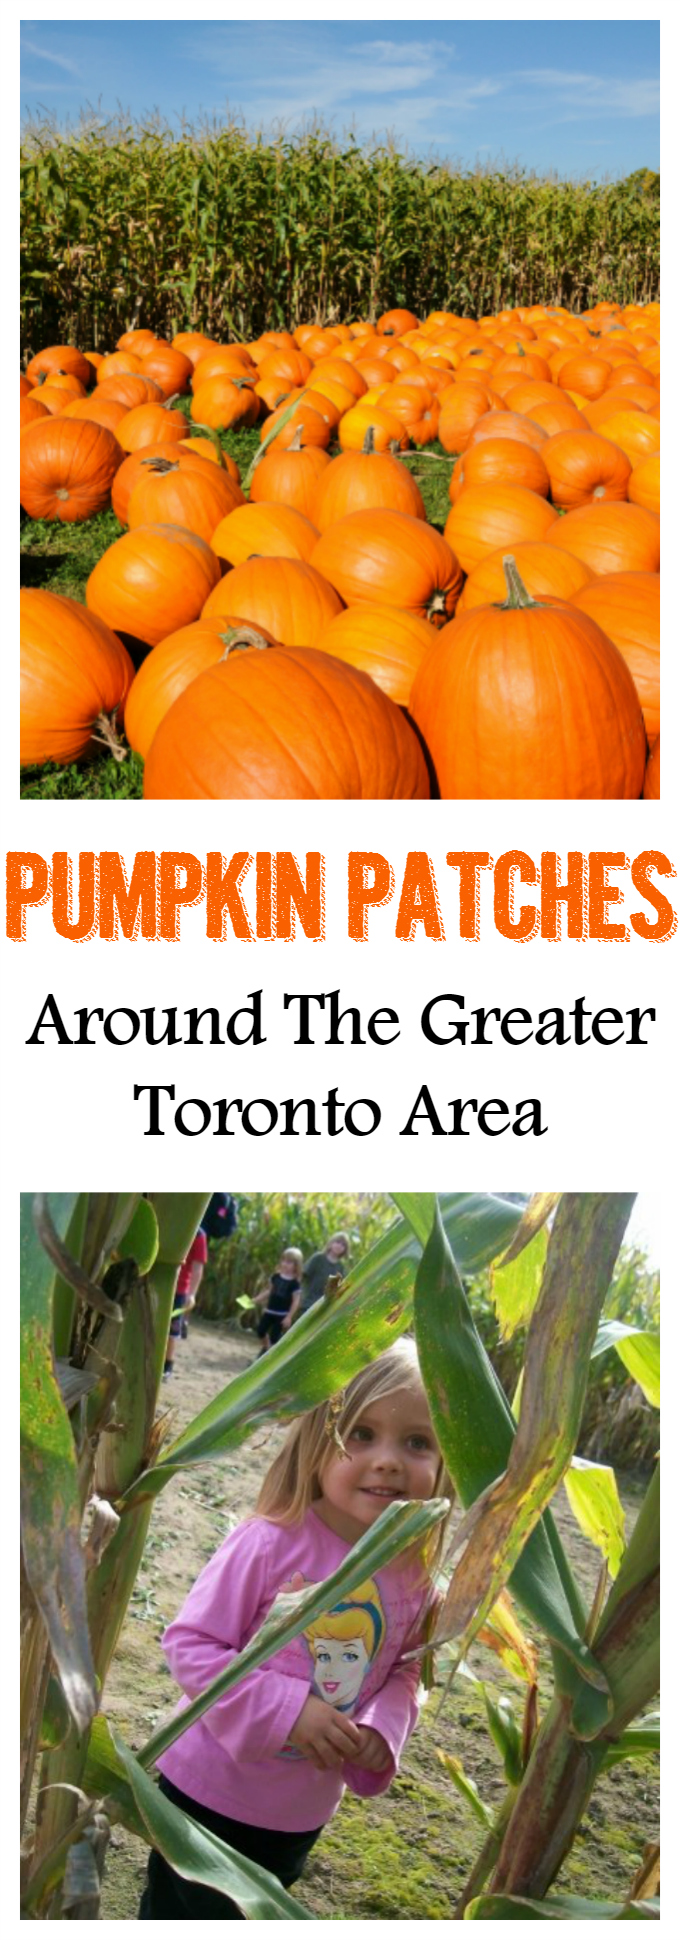 pumpkin patches toronto_pinterest